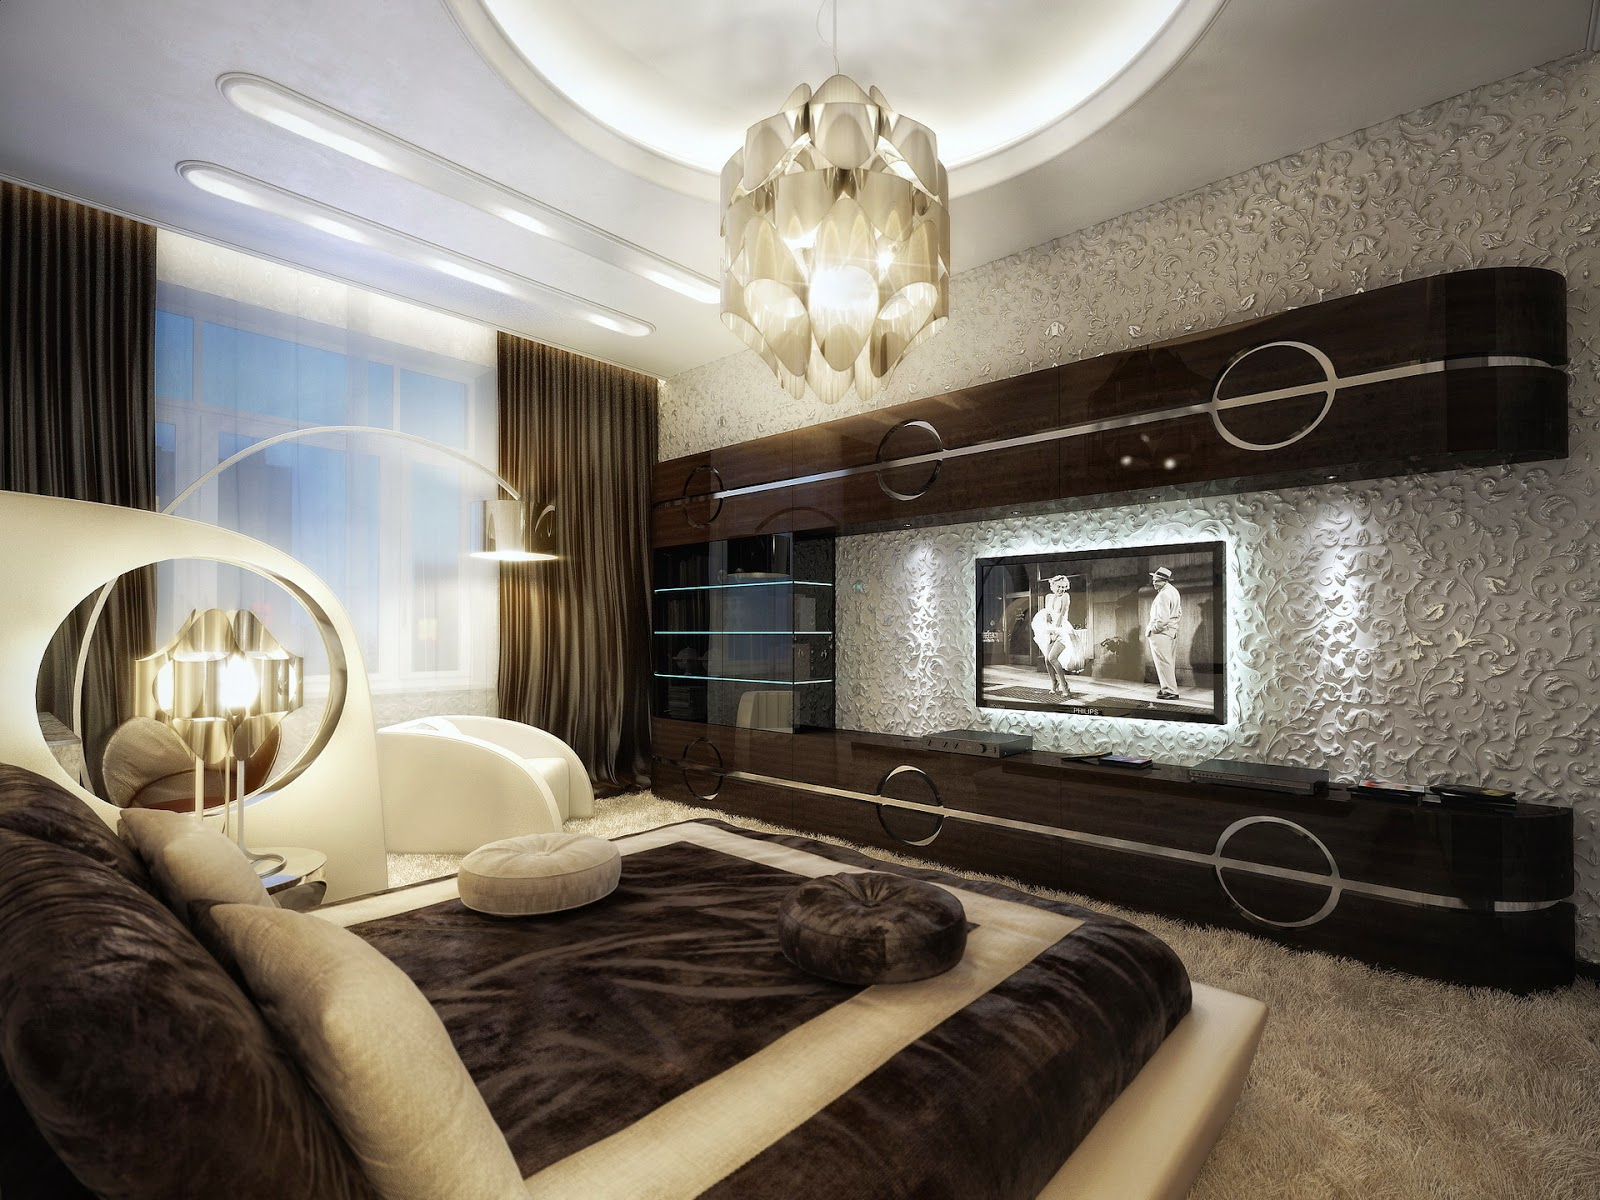 Dream Bedroom Decor Ideas For Young Girls Style Pk